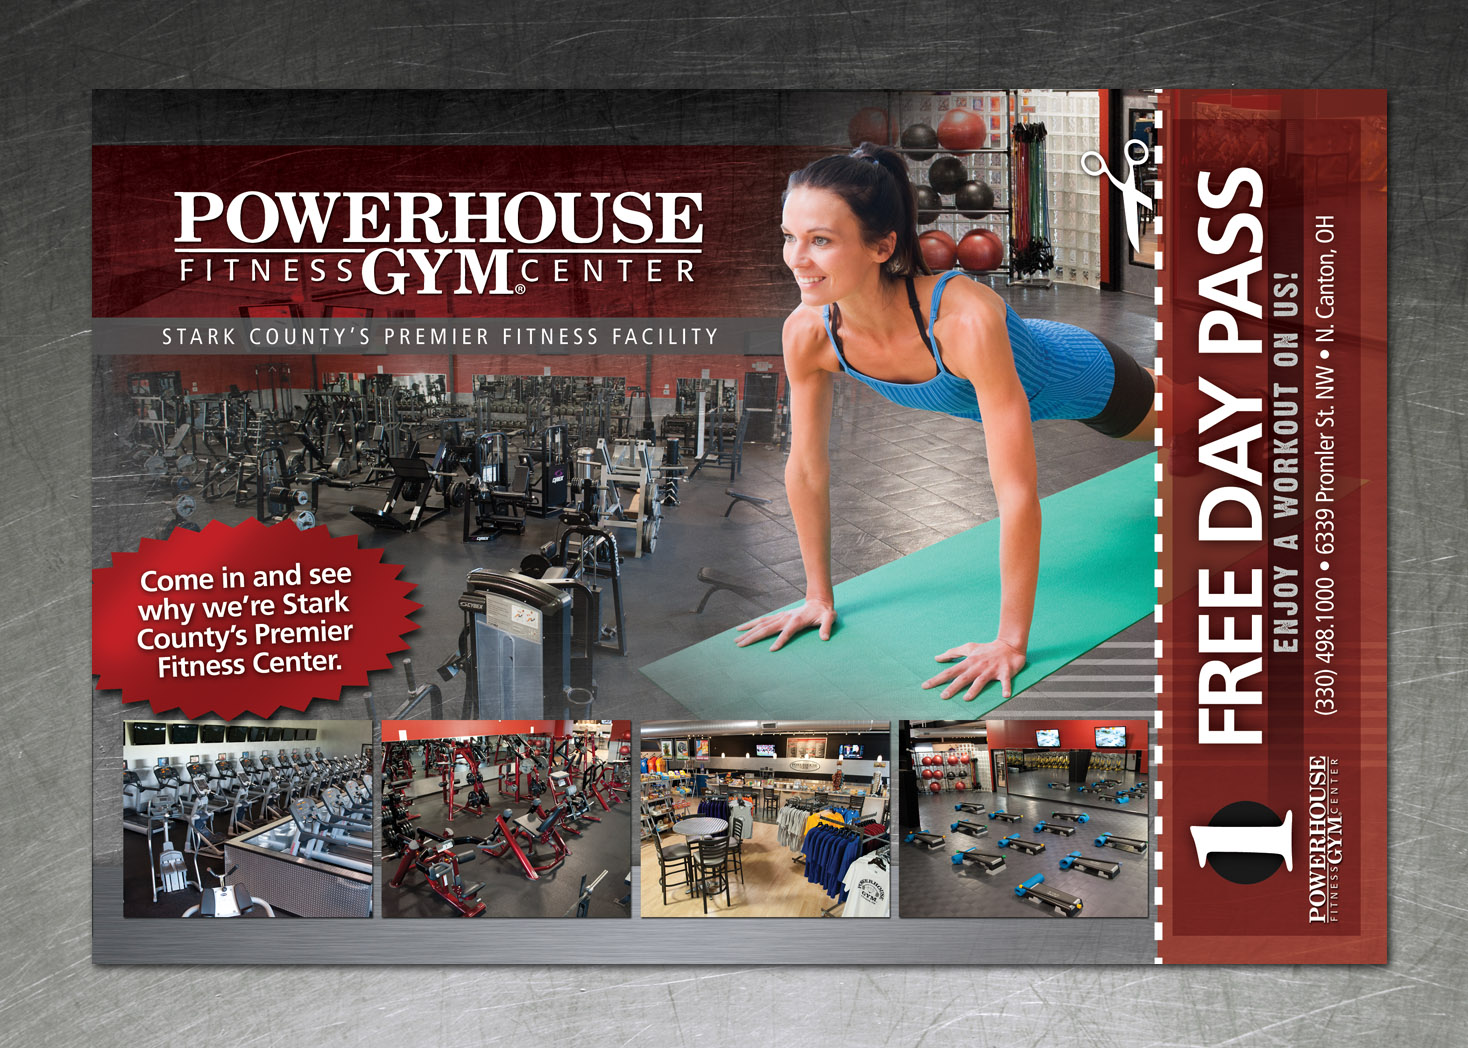 Powerhouse Gym Marketing Postcard - Lehman Design